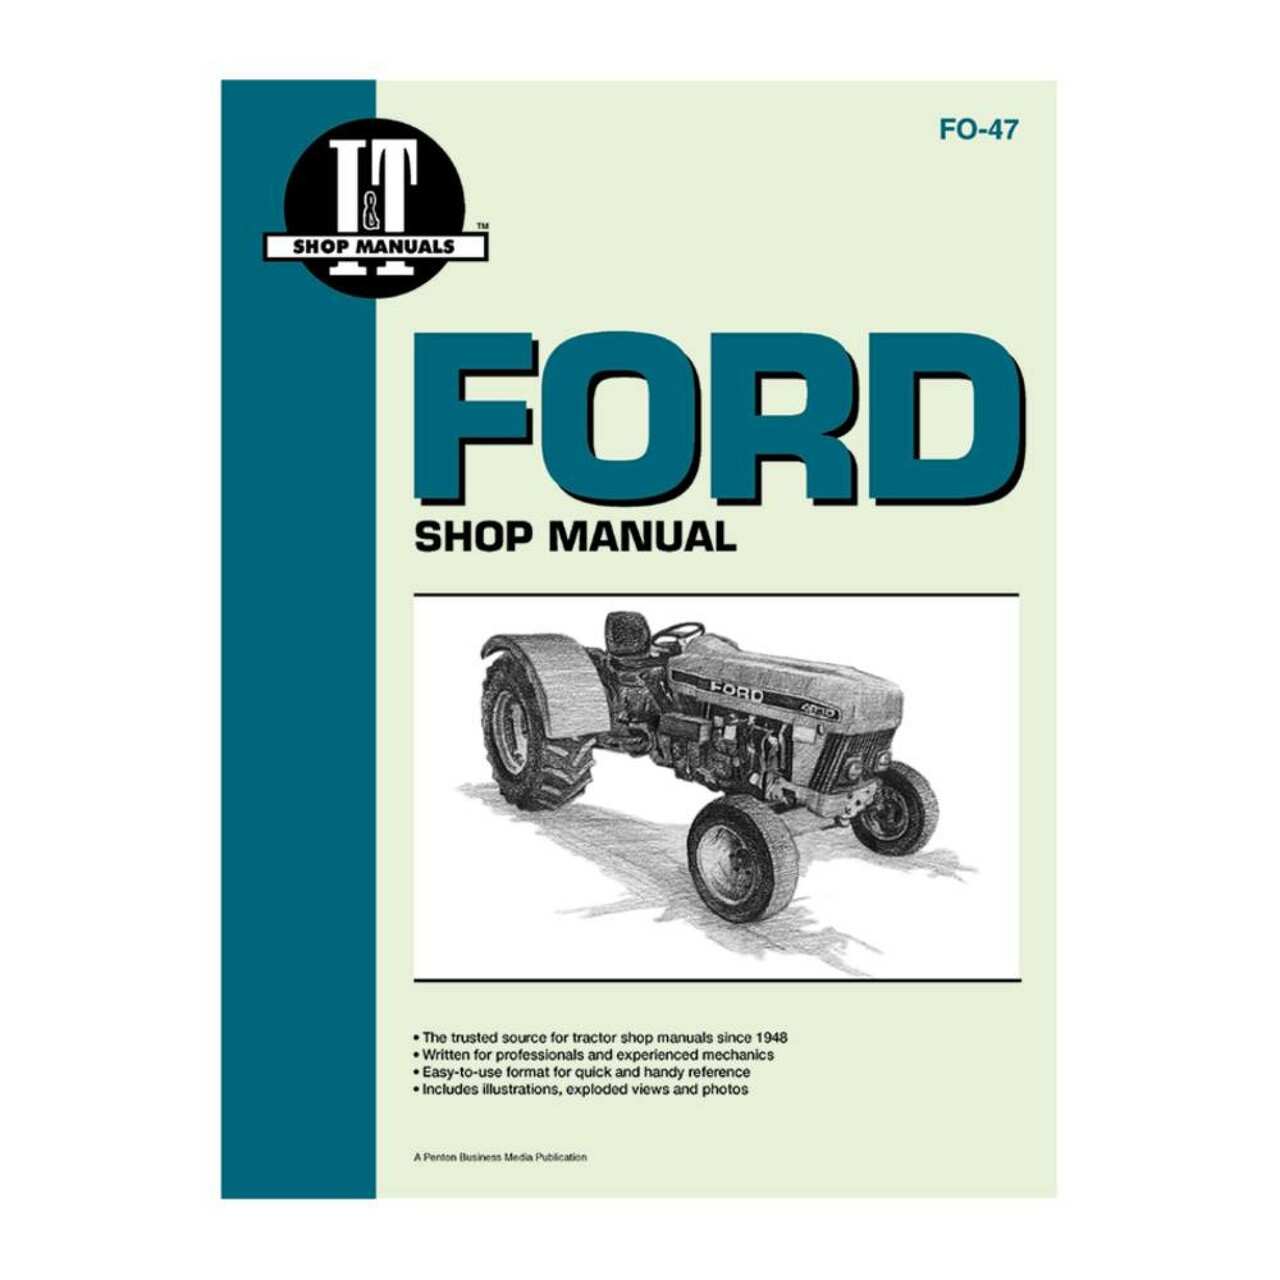 3930 Ford Tractor Wiring Diagram - Wiring Diagram Networks